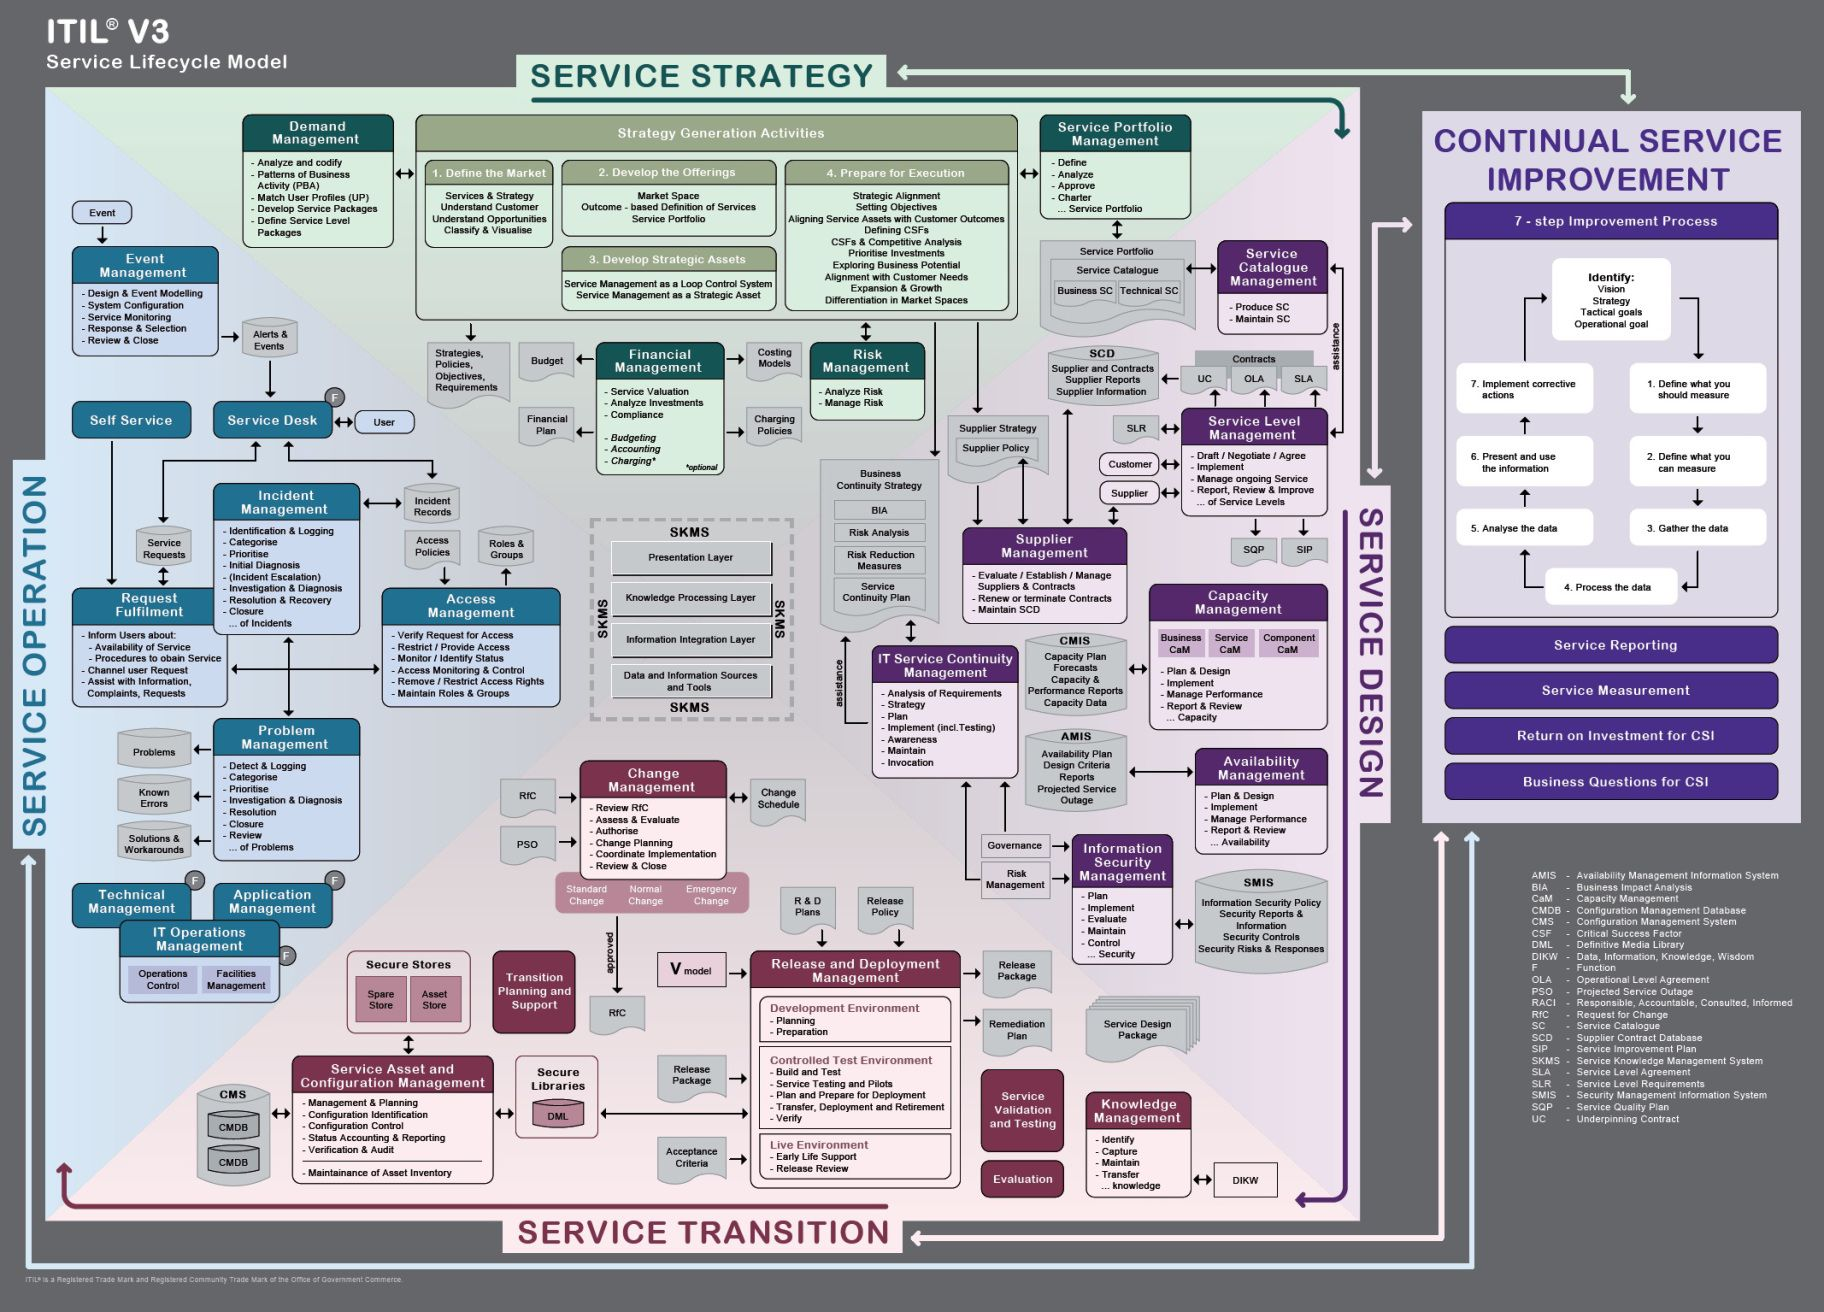 Itil v3 service lifecycle model technology pinterest for Itil v3 templates